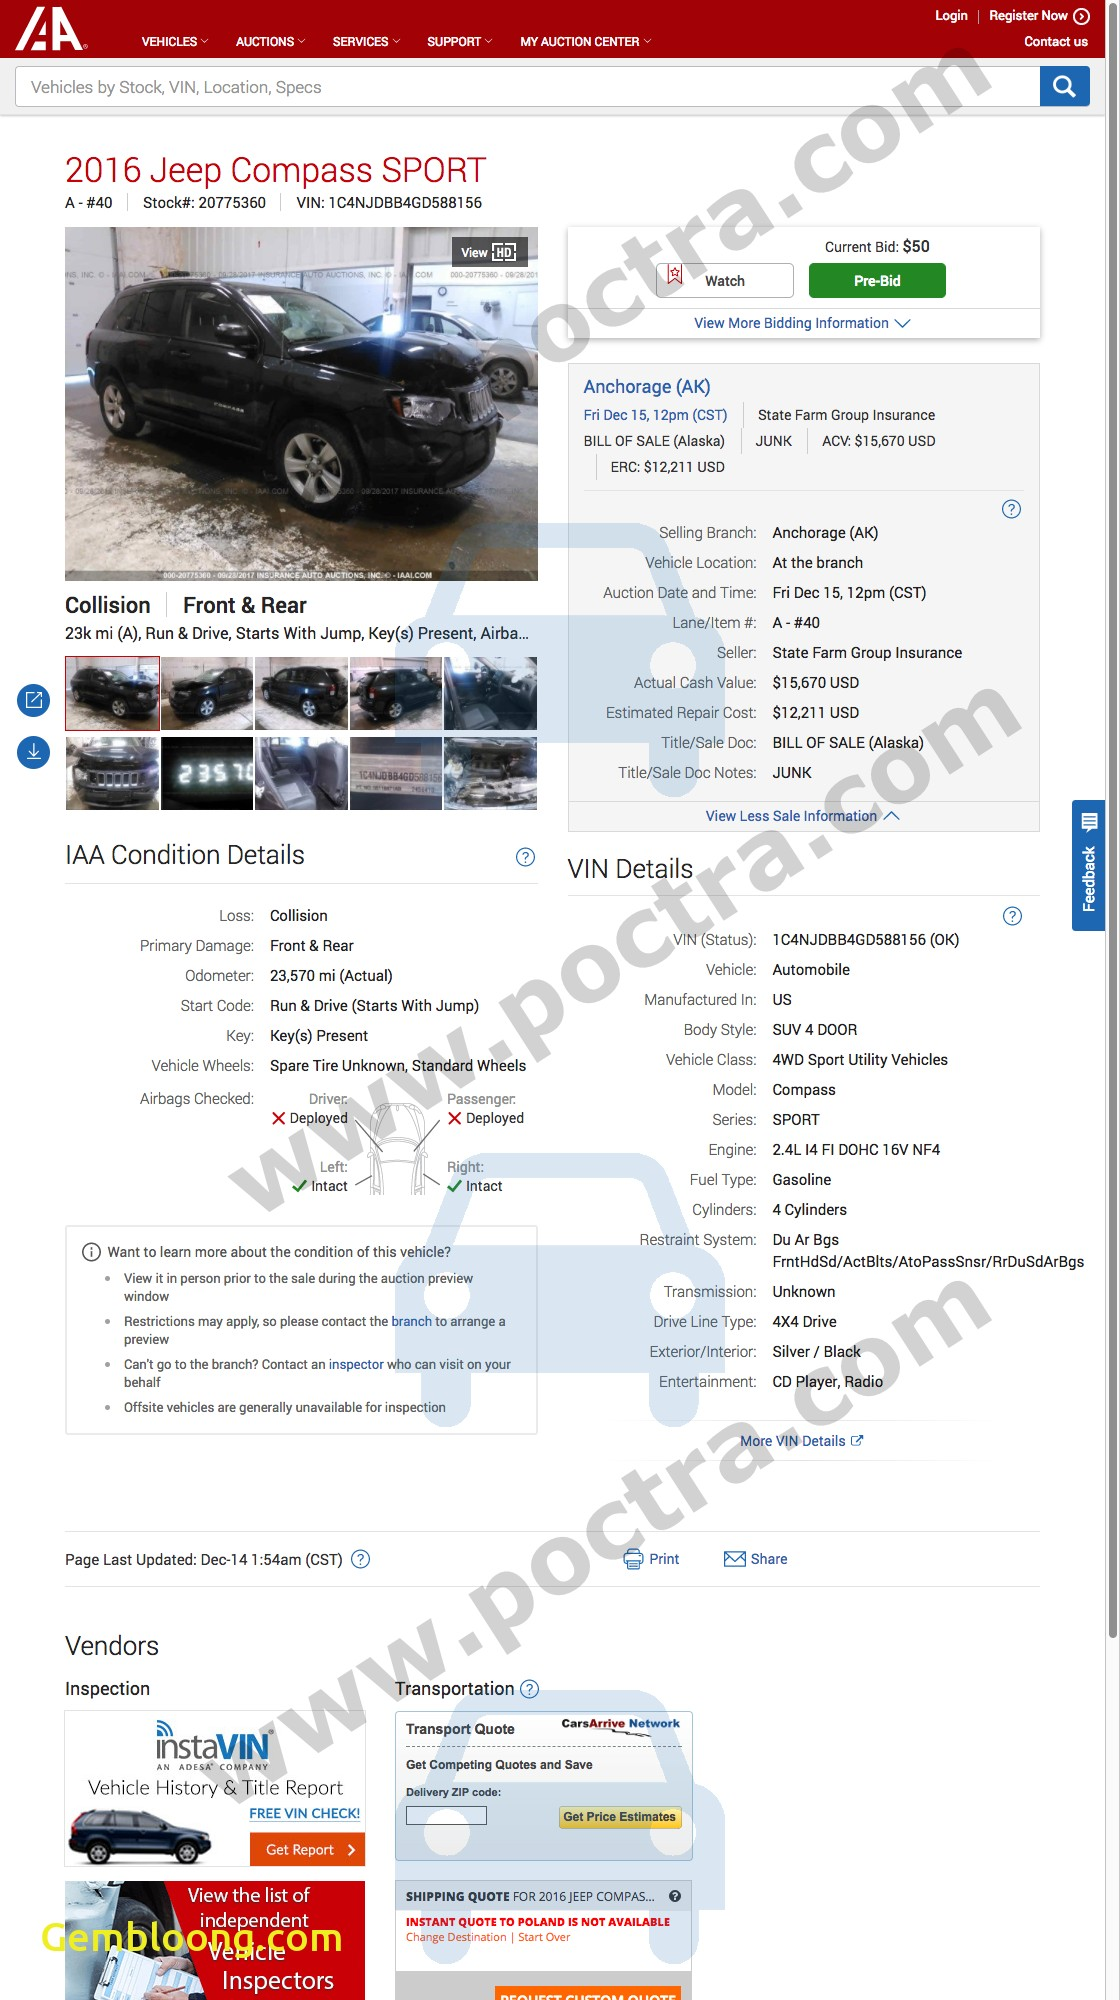 Car History Report Awesome 2016 Jeep Pass Sport 1c4njdbb4gd Photos Poctra